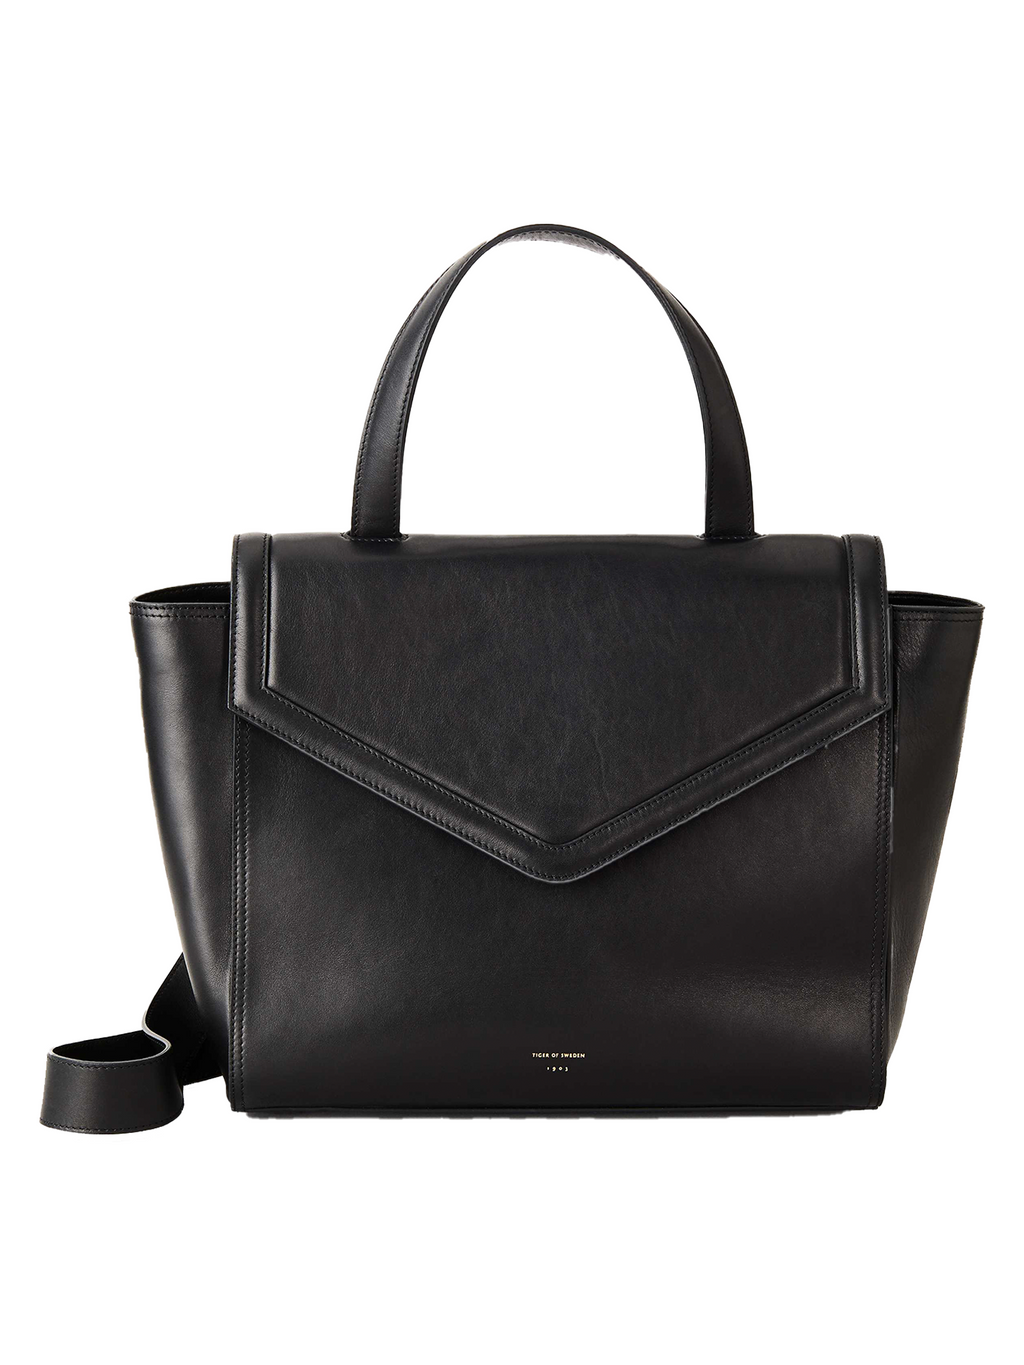 Tiger of Sweden Medium Leather Handbag - Black